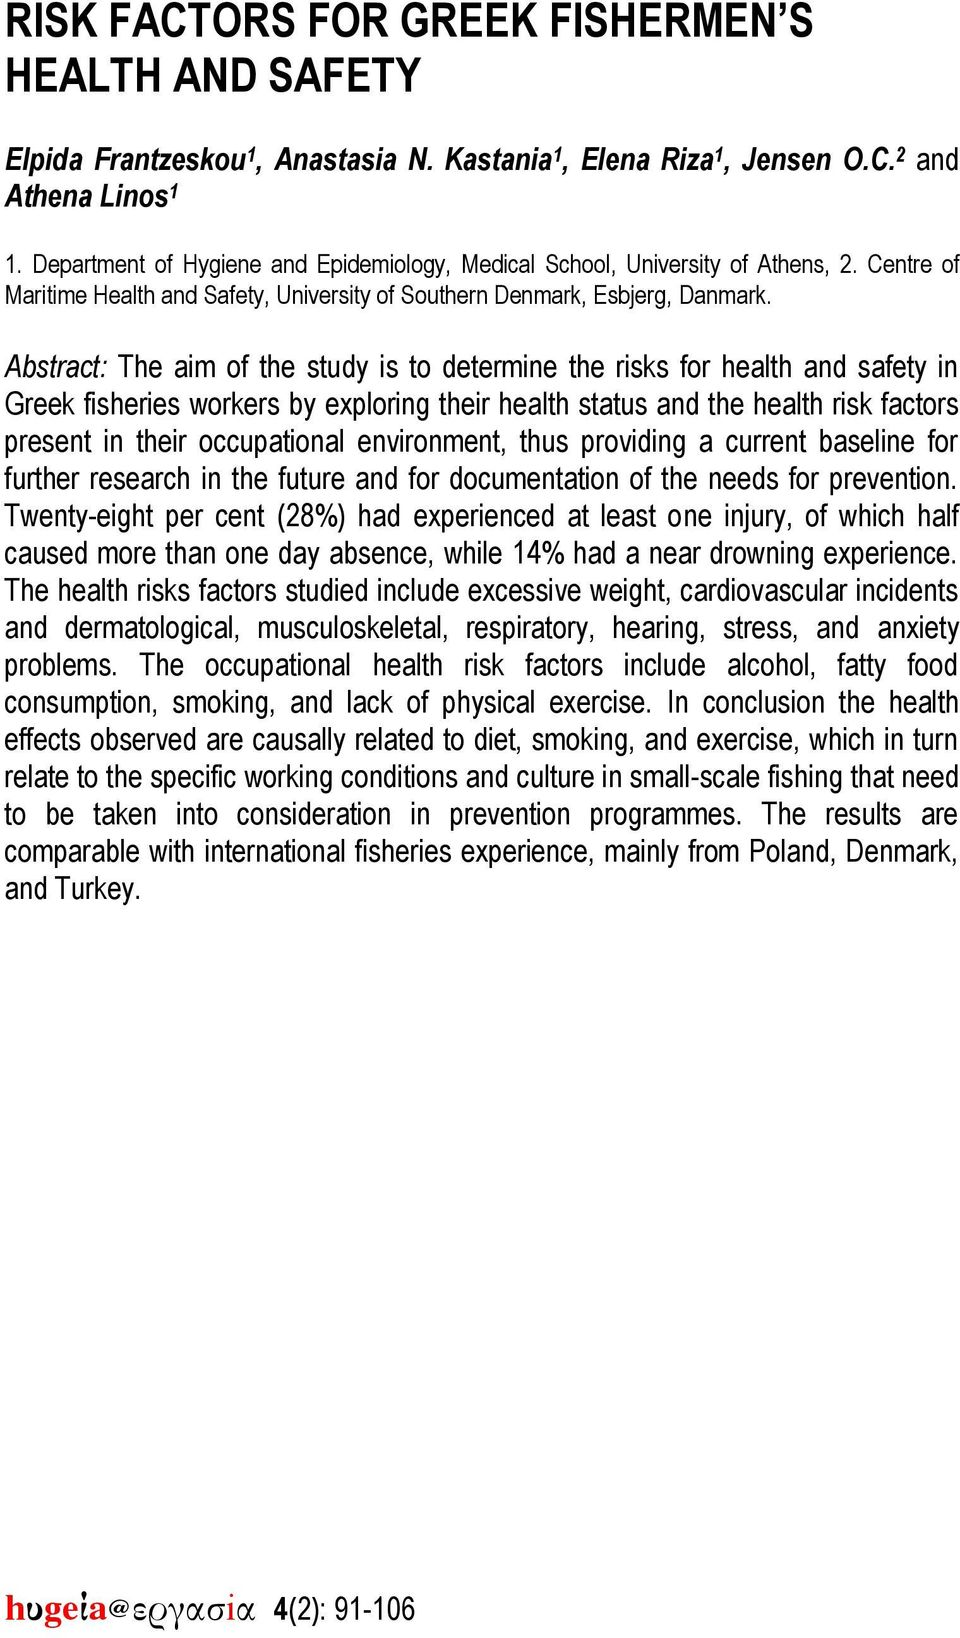 Abstract: The aim of the study is to determine the risks for health and safety in Greek fisheries workers by exploring their health status and the health risk factors present in their occupational